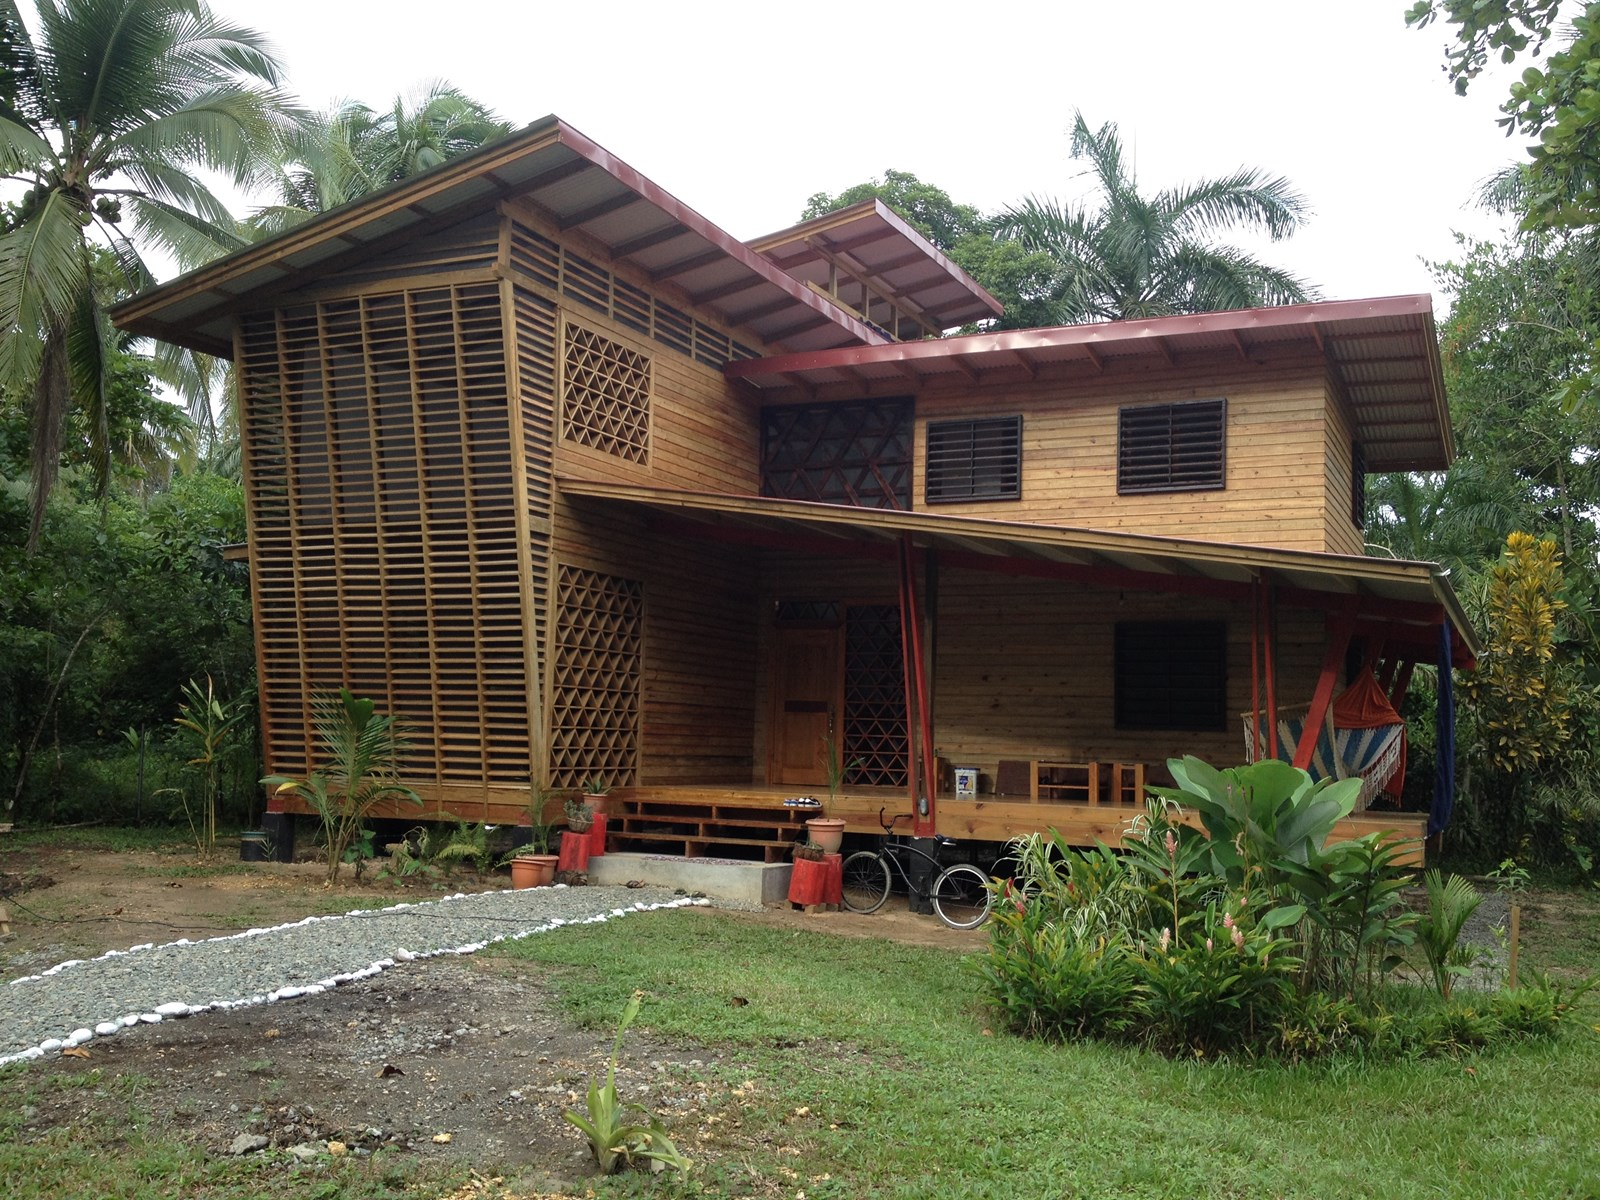 Pool House for Rent Bocas del Toro Panama